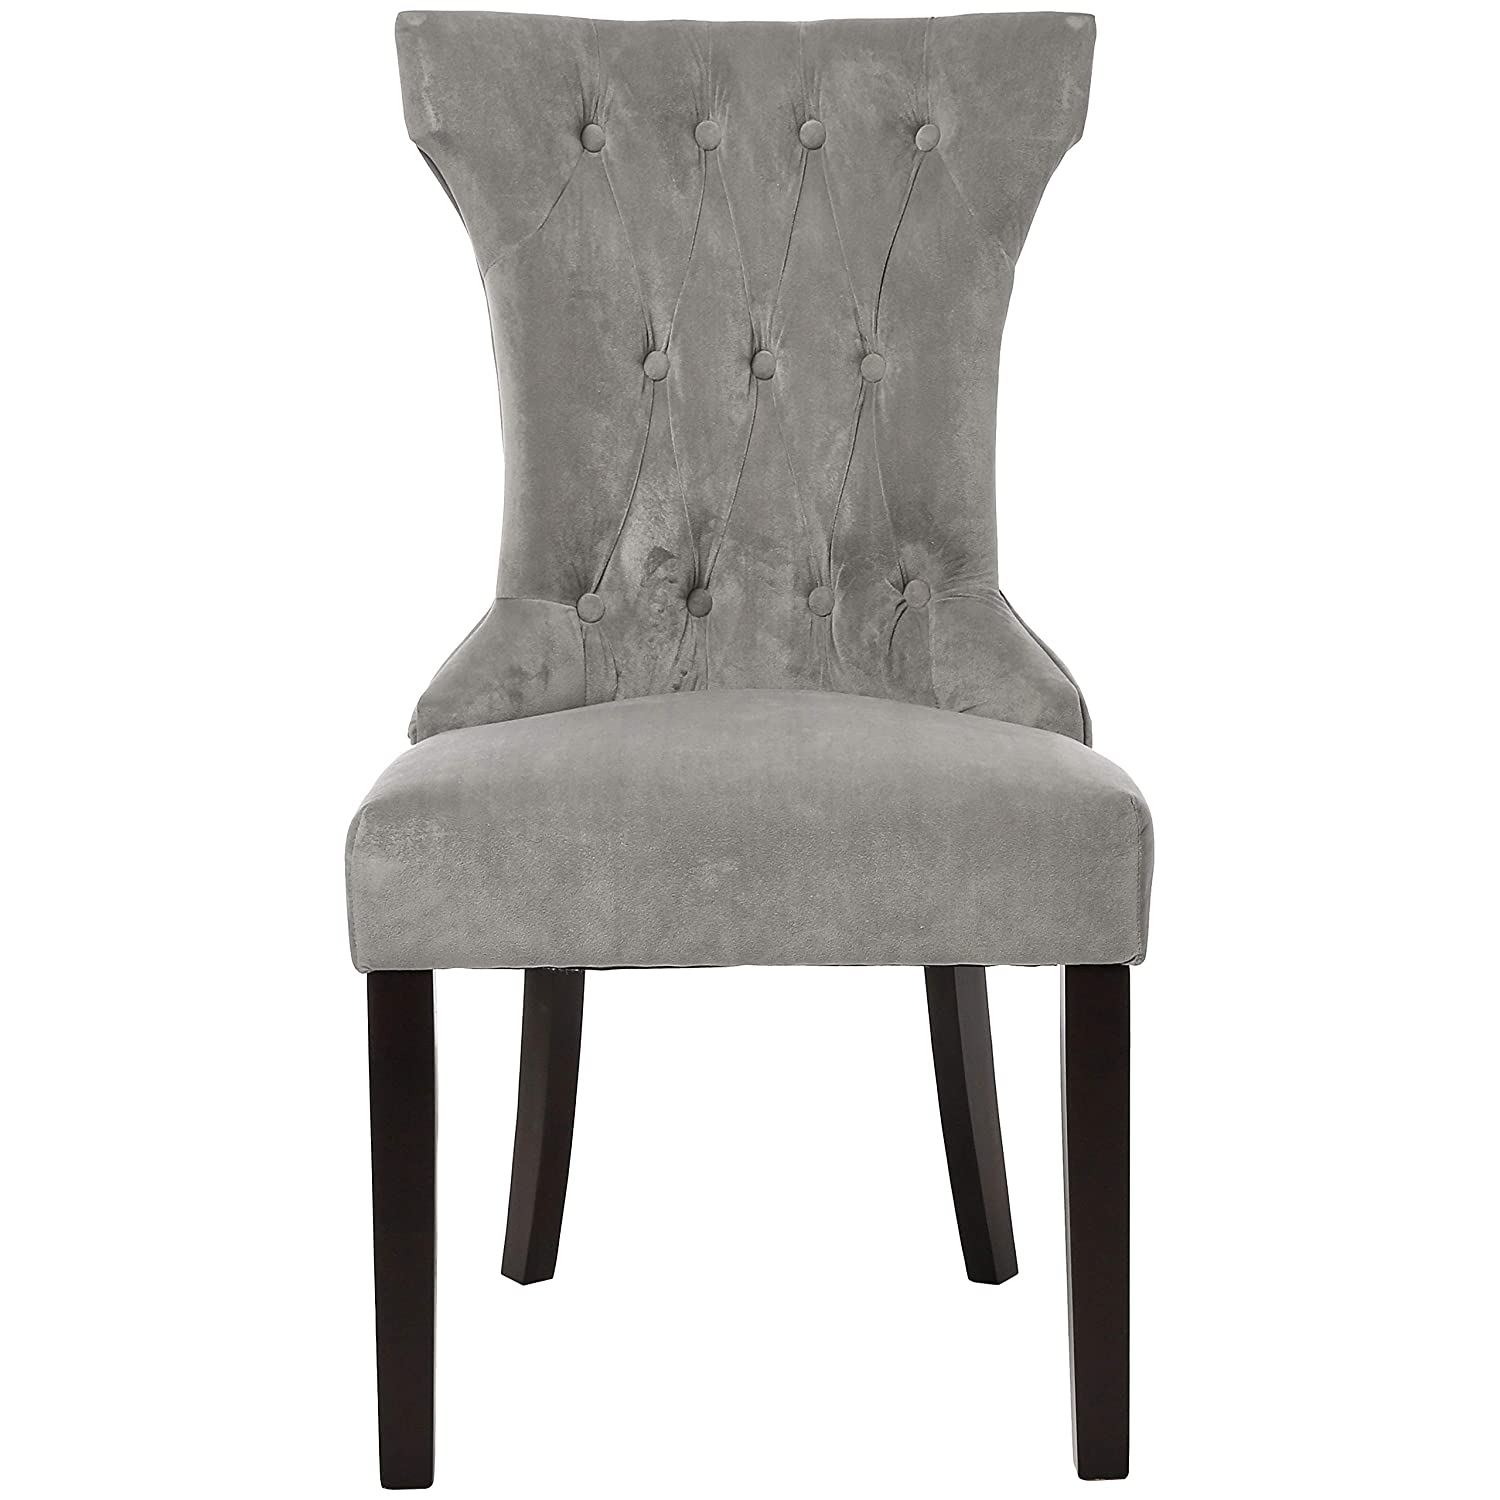 Red Hook Mitros Tufted Upholstered Armless Dining Chair - Set of 2, Pewter Grey